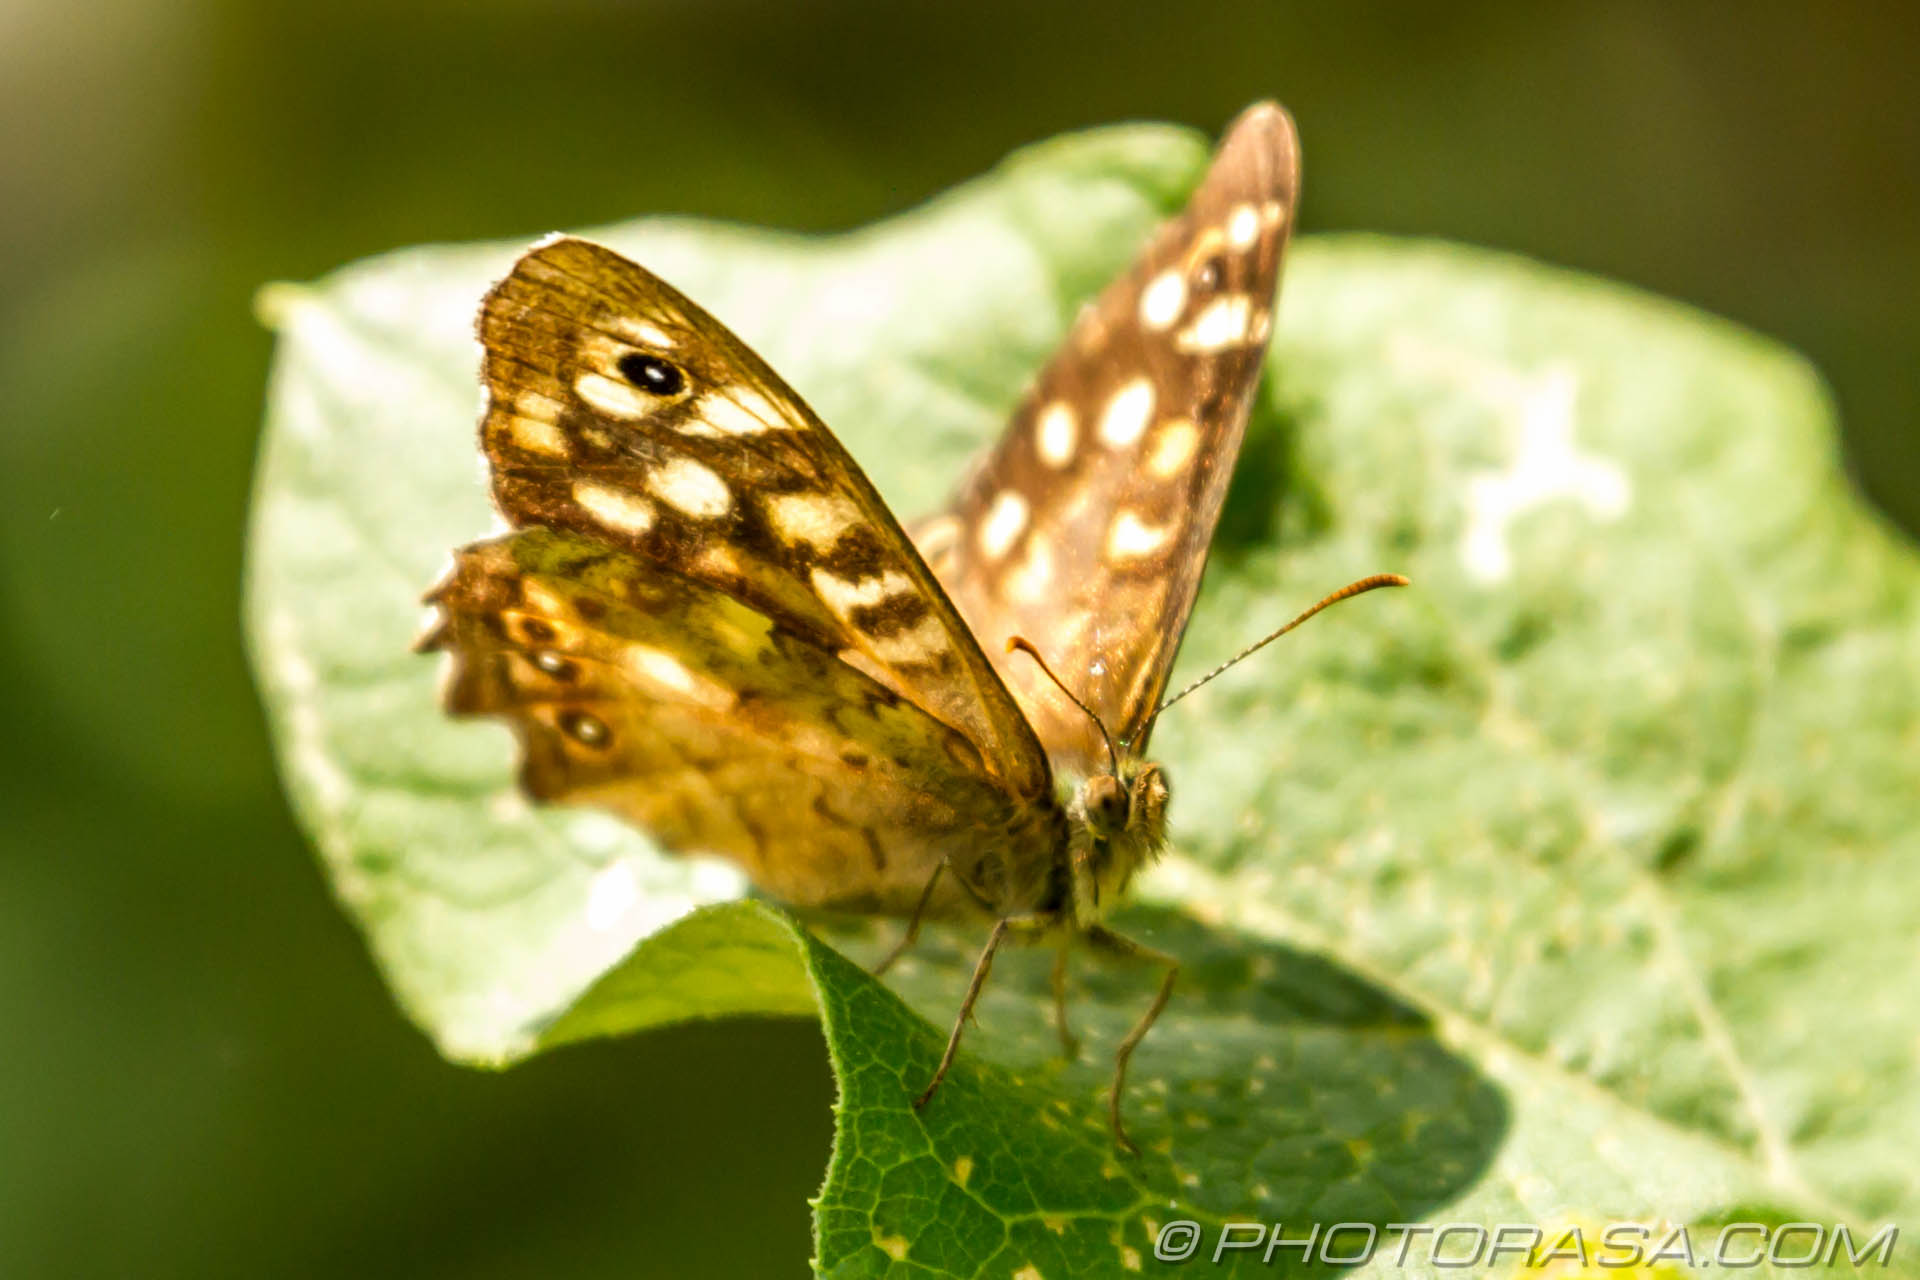 https://photorasa.com/speckled-wood-butterfly/speckled-wood-on-leaf/